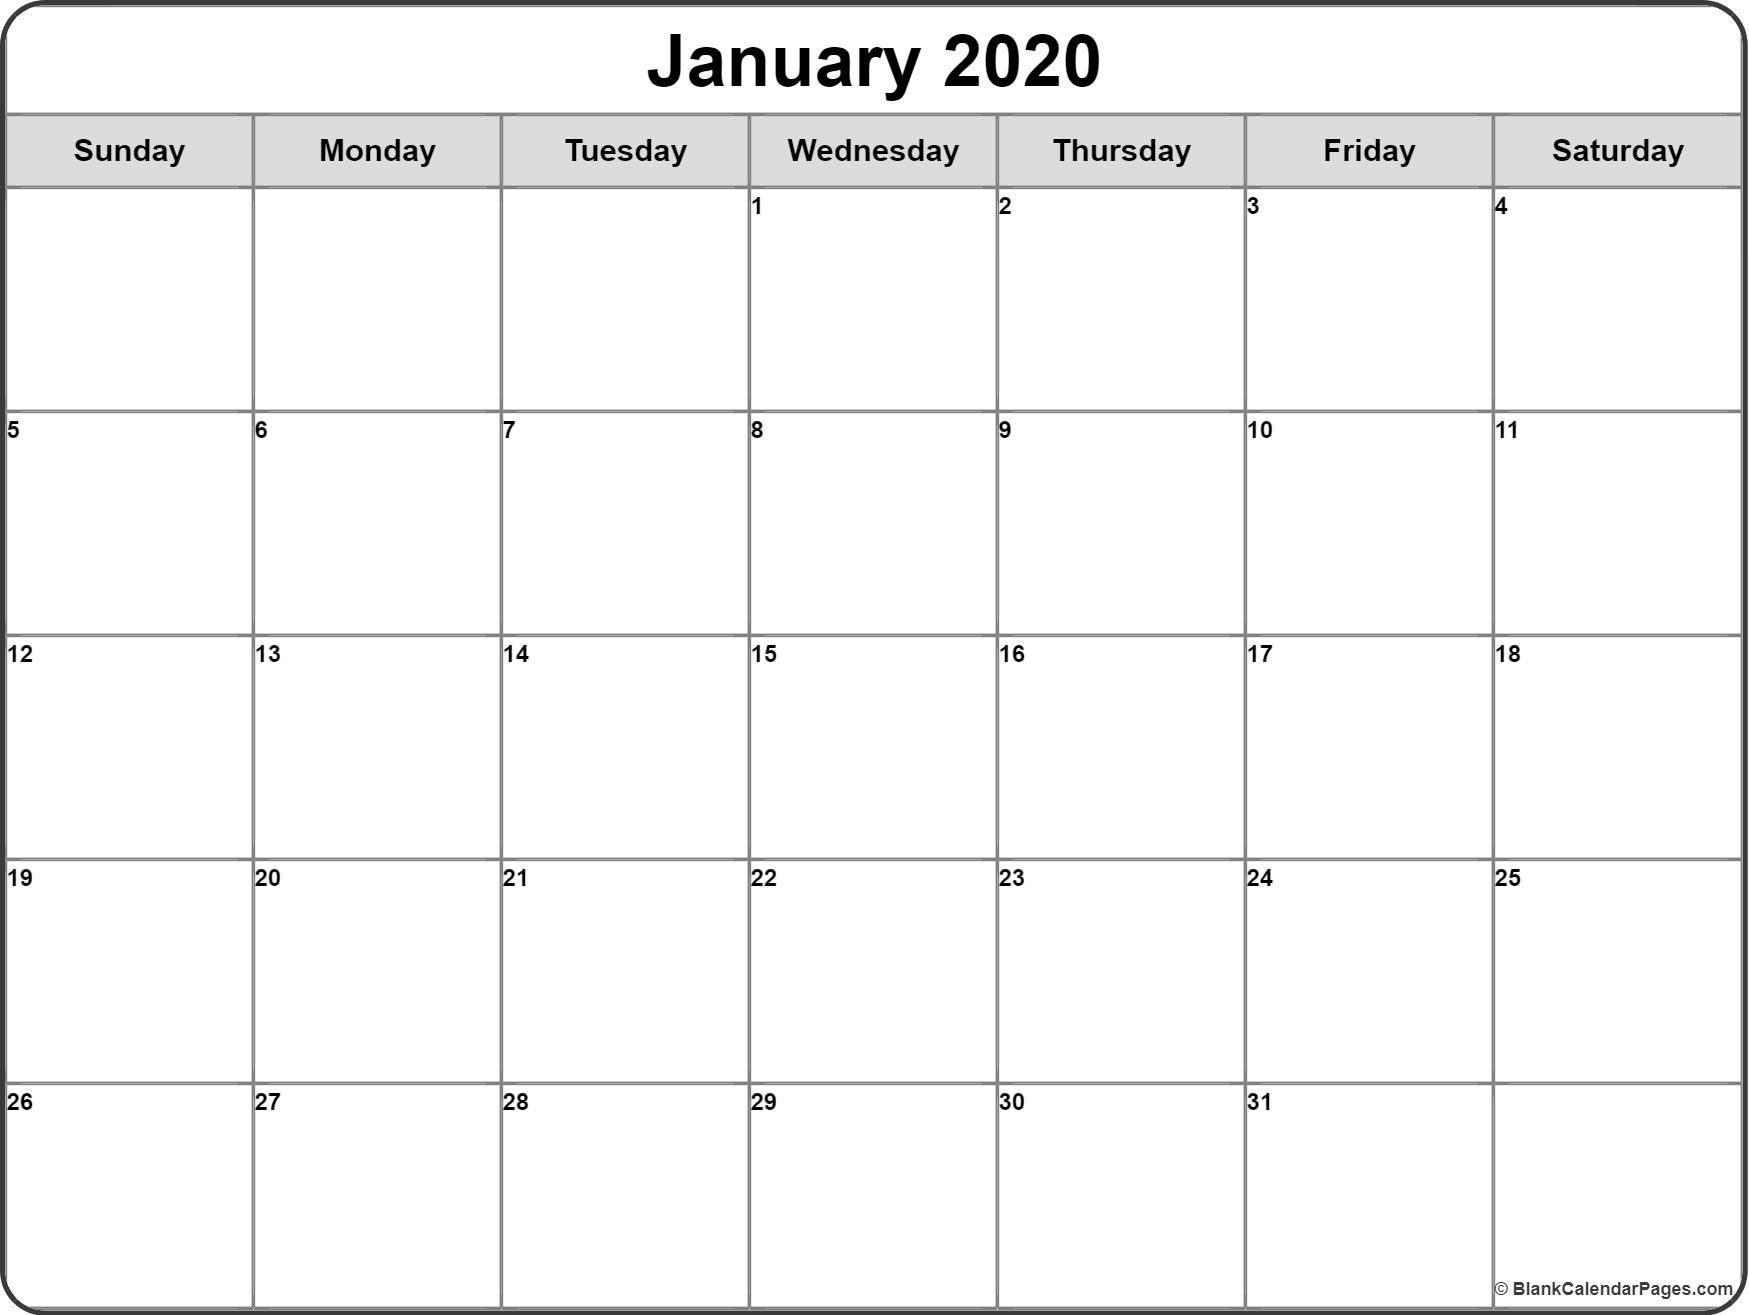 January 2020 Calendar | Free Printable Monthly Calendars-Editable Printable Calendar 2020 Monthly Sunday Start